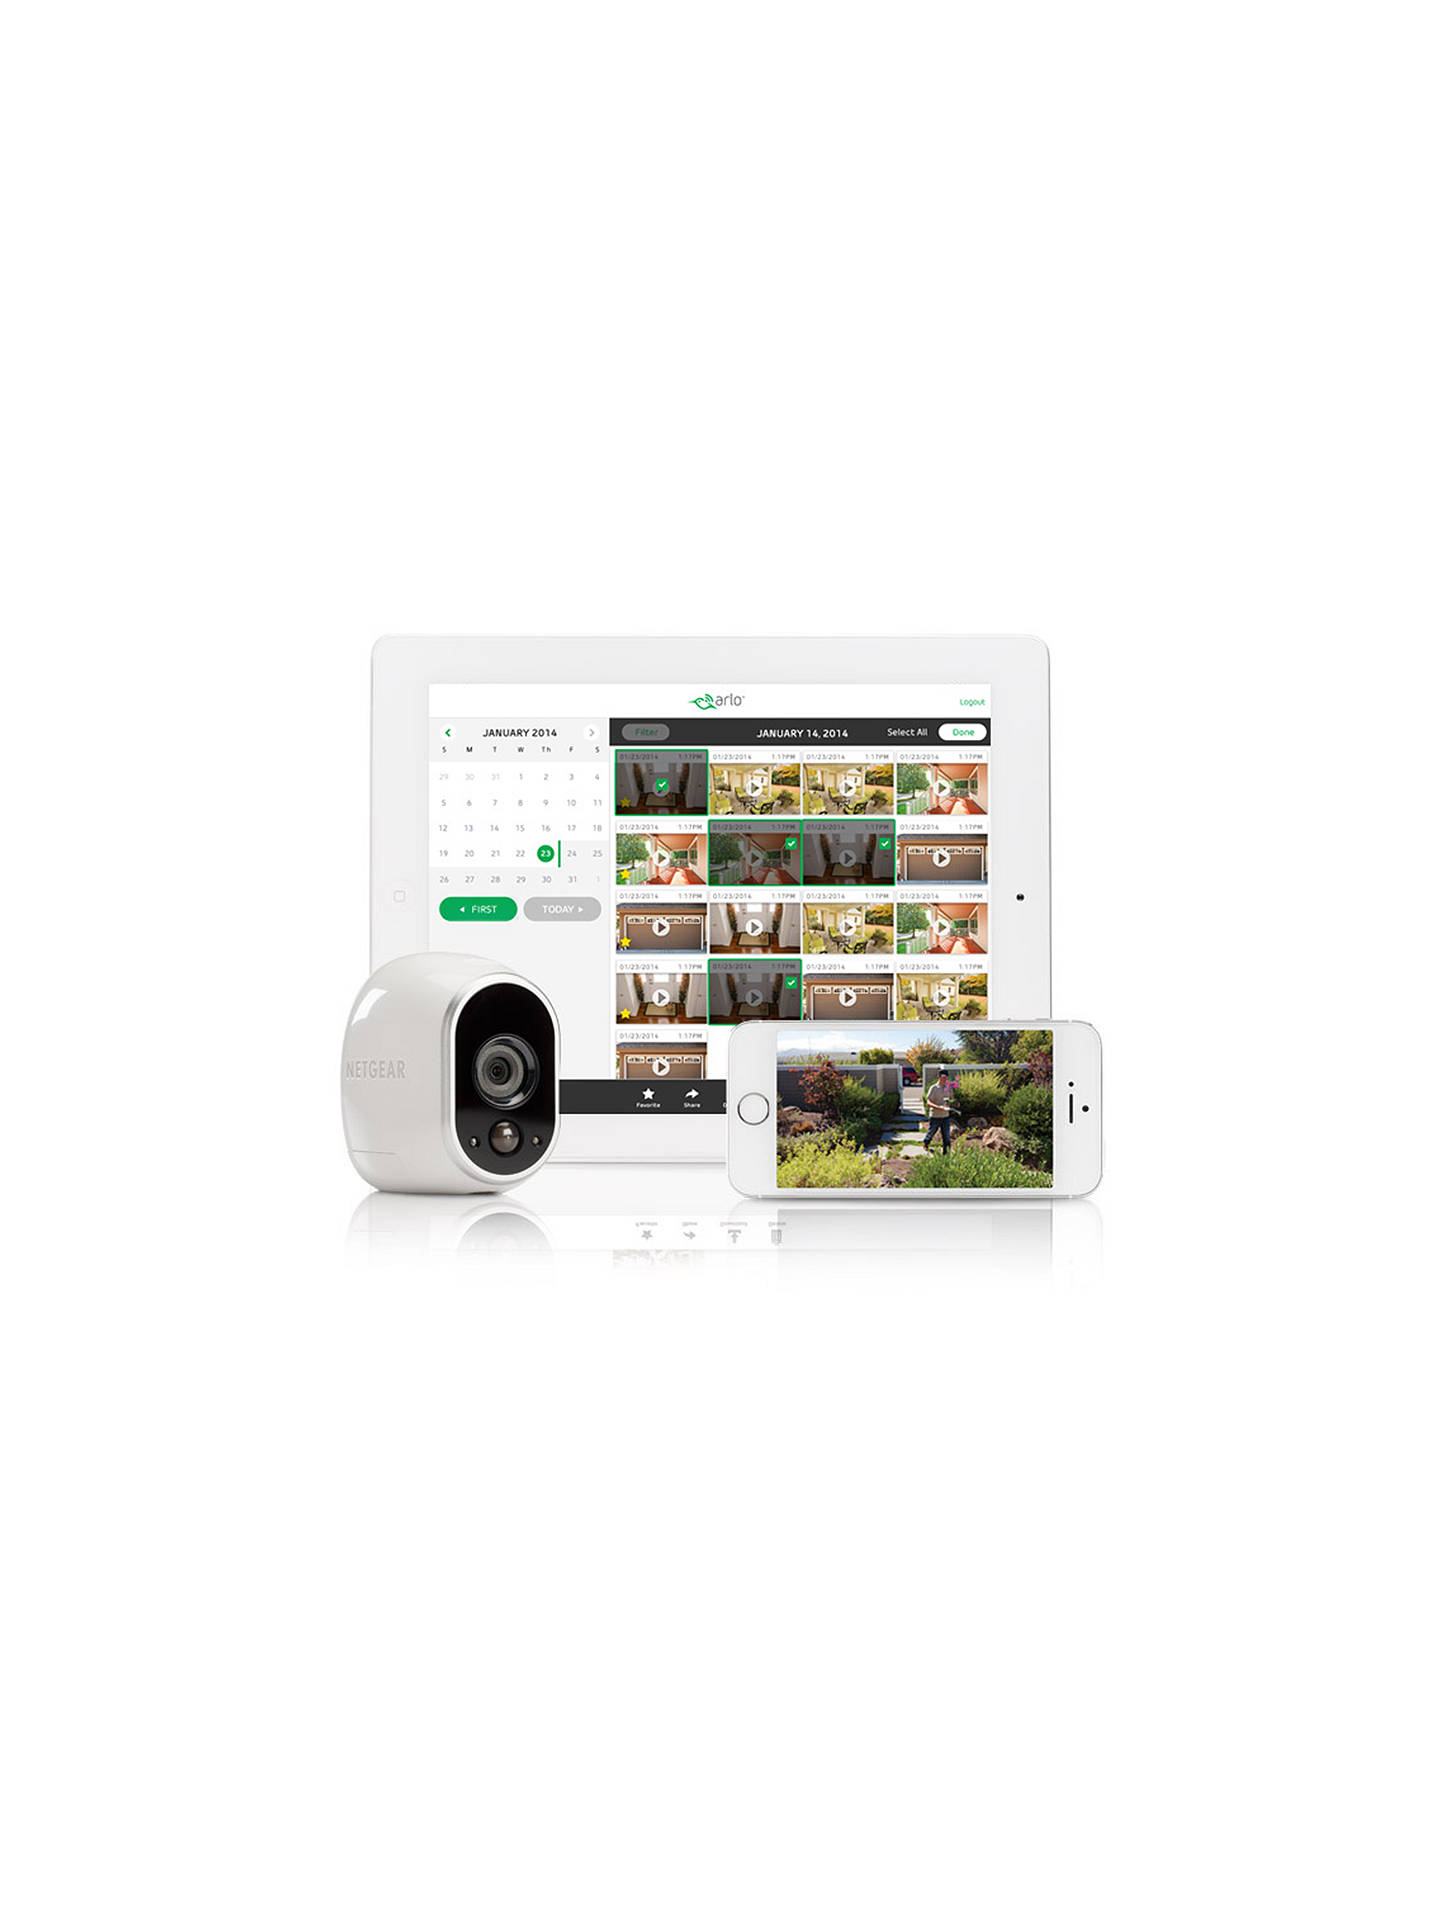 Netgear Arlo Smart Security System With 3 HD Cameras, White